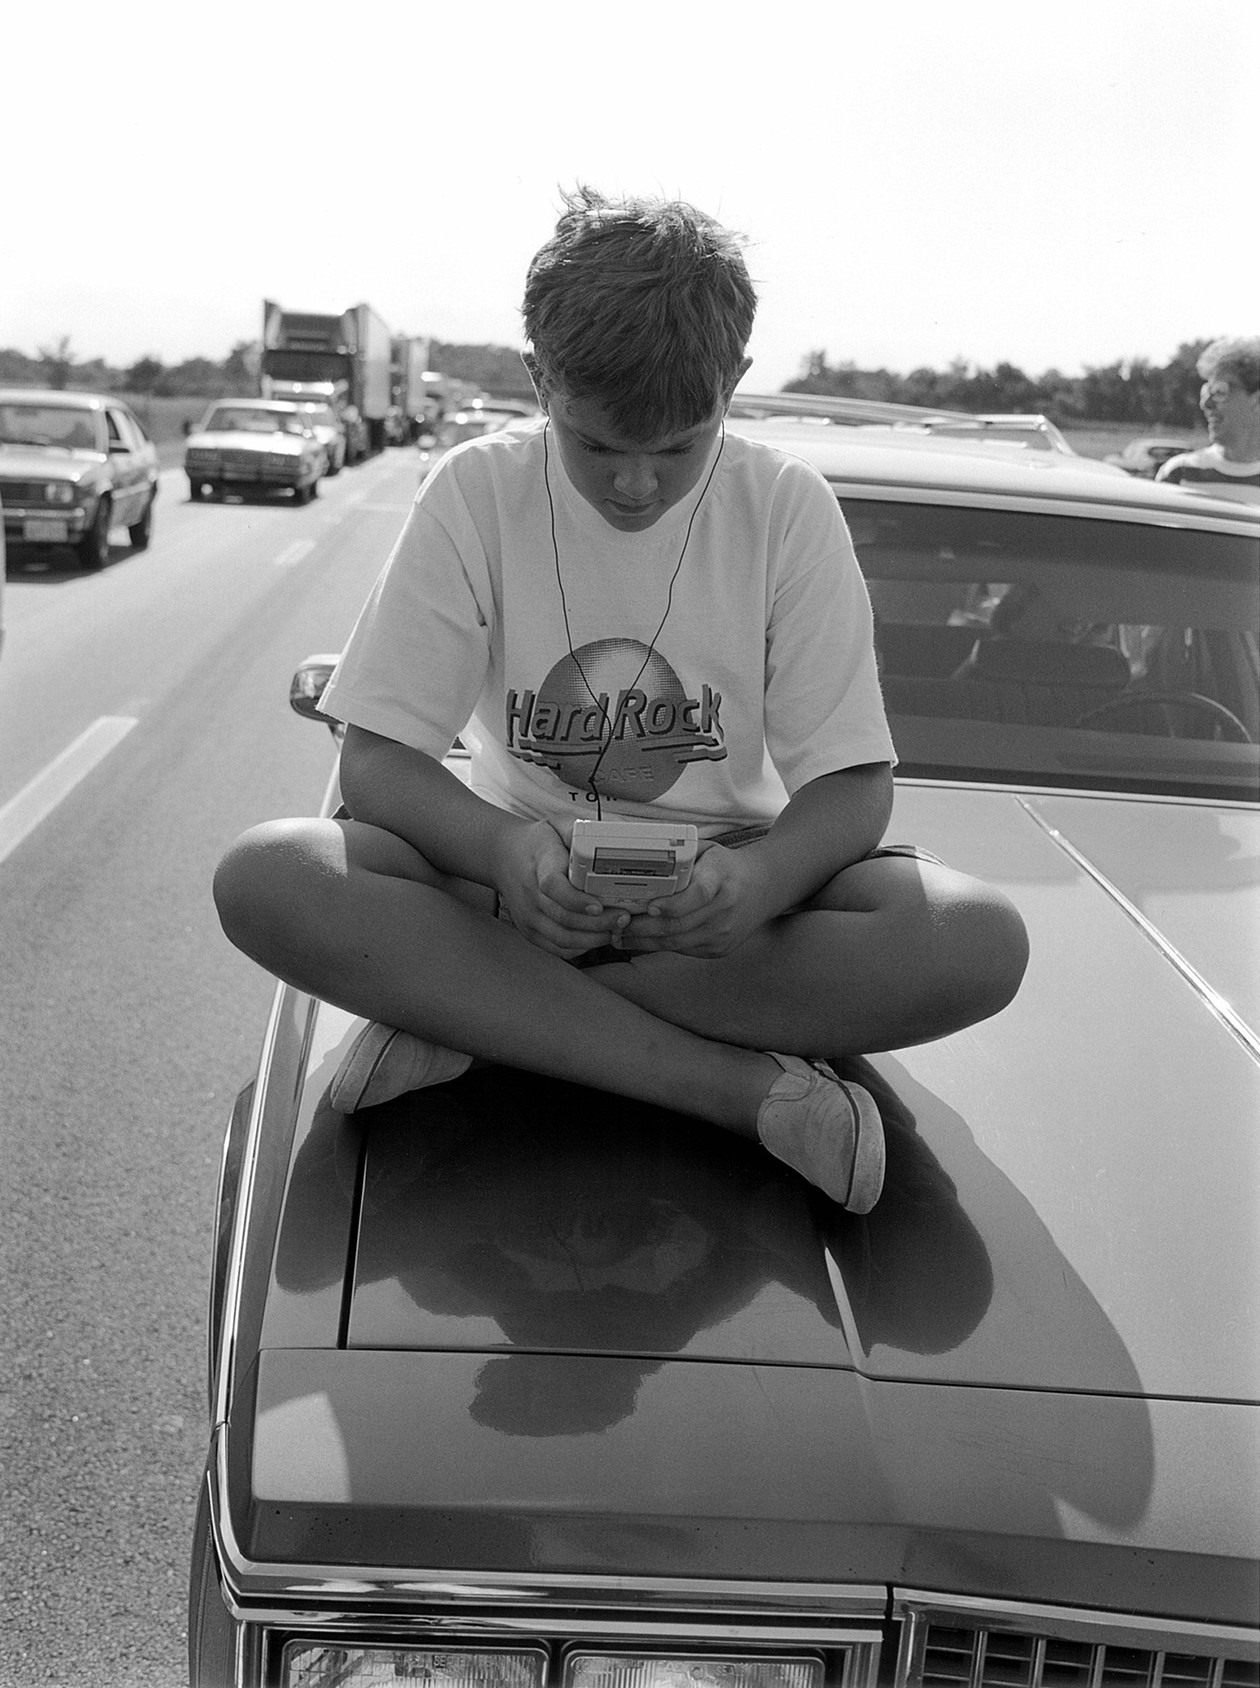 I-55, Illinois (1991) by Mark Steinmetz